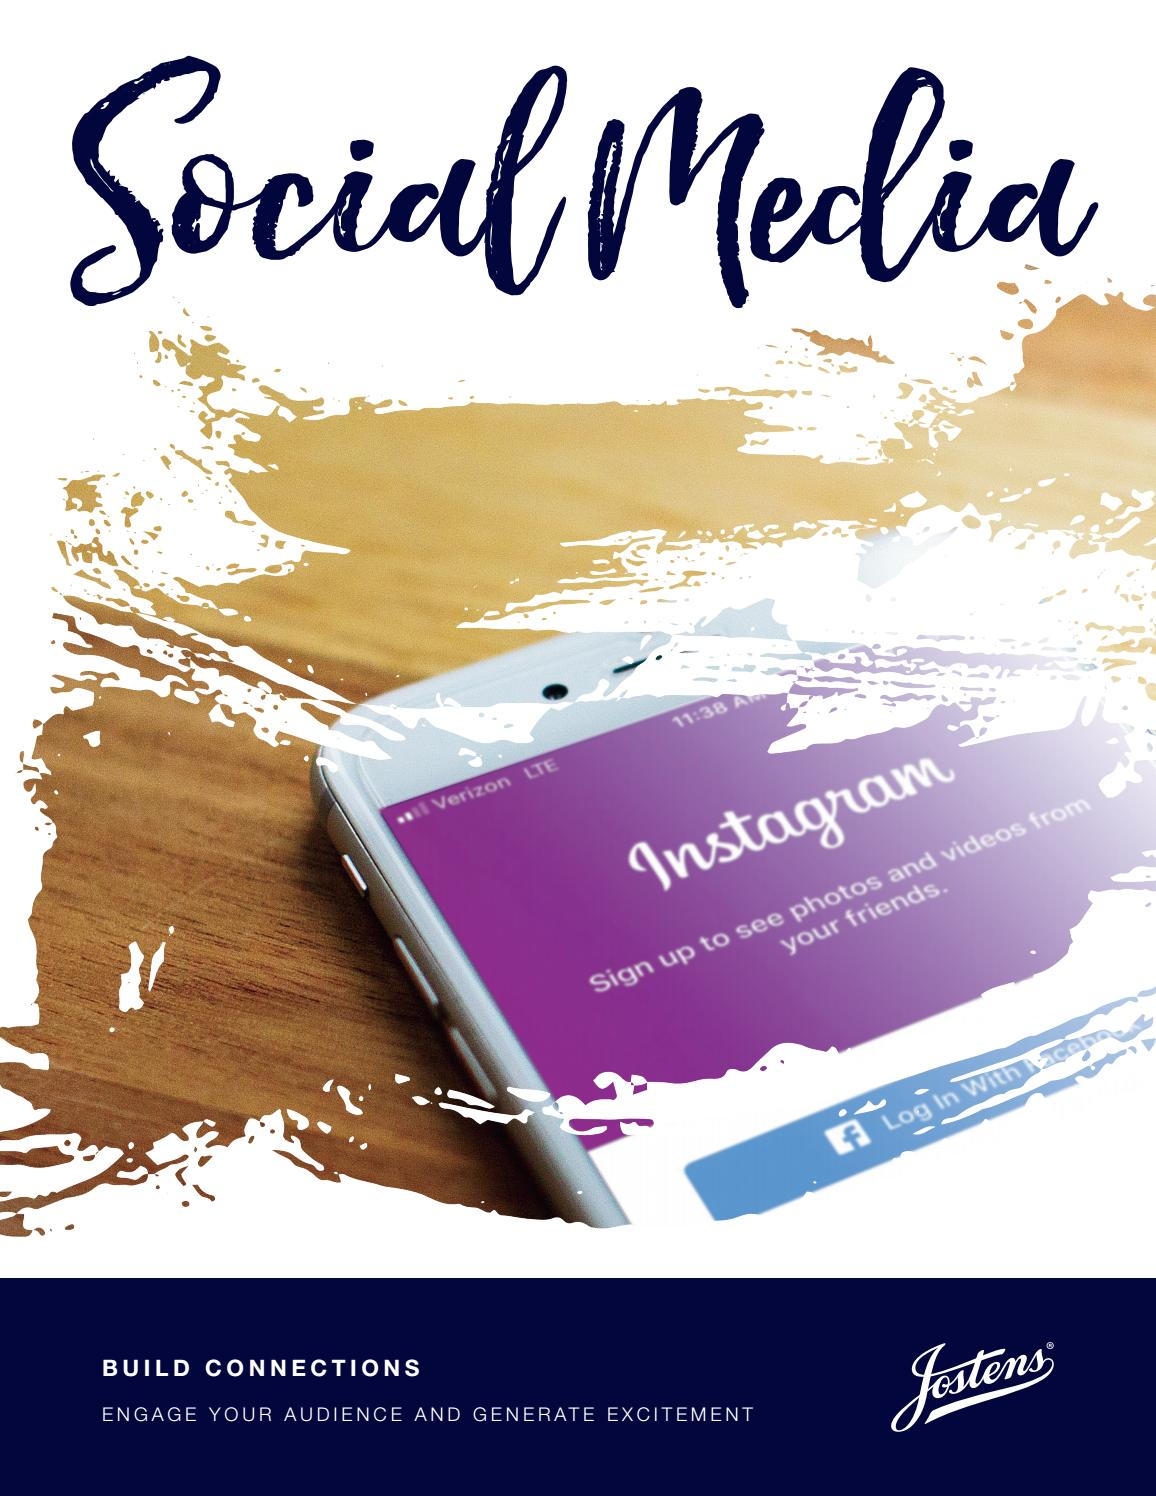 Yearbook Social Media By Jostens By Jostens Yearbook Issuu